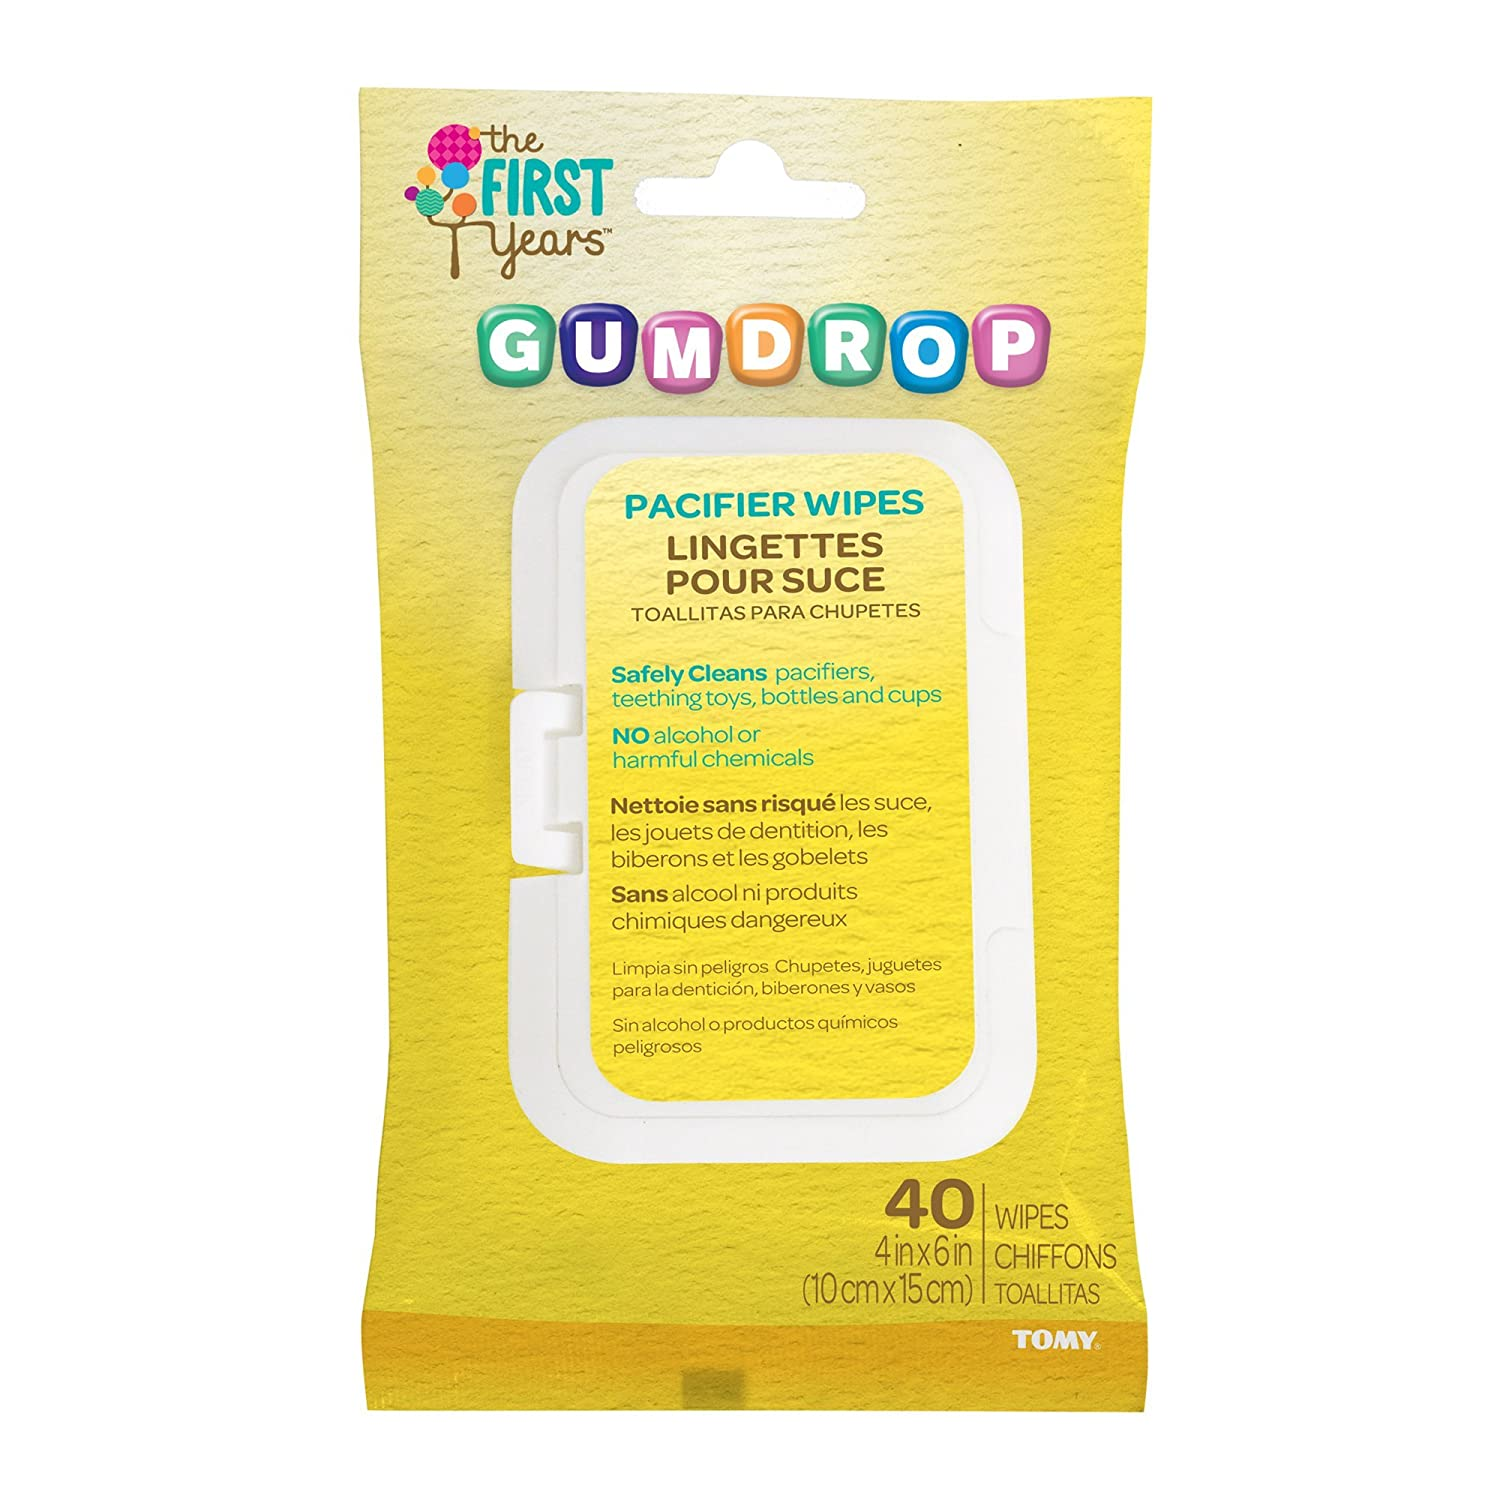 Amazon.com : Gumdrop Chupete Wipes : Baby